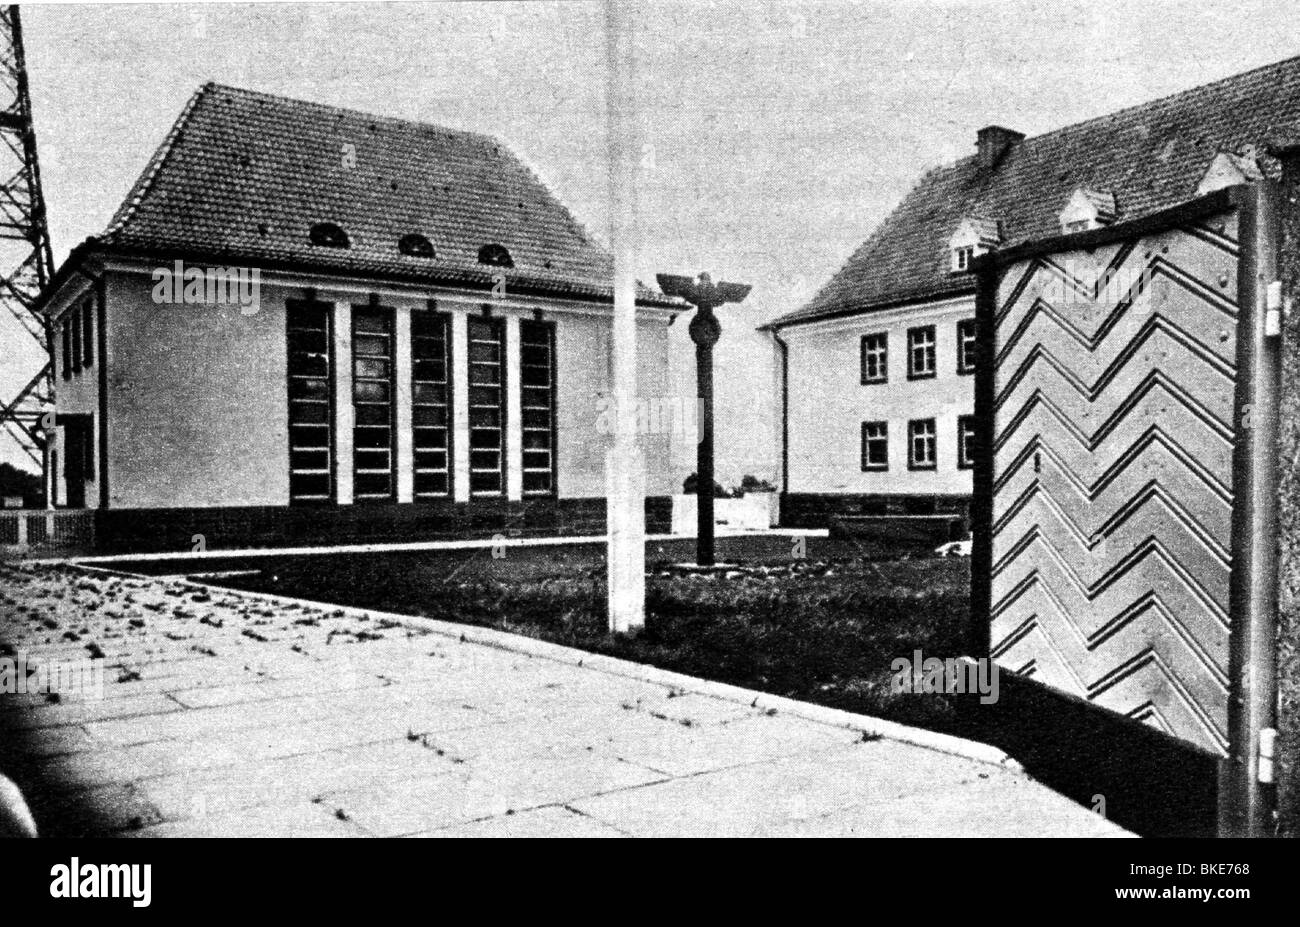 geography / travel, Germany, Eastern districts, Gleiwitz, Silesia, Reich radio station, circa 1940, Additional-Rights - Stock Image